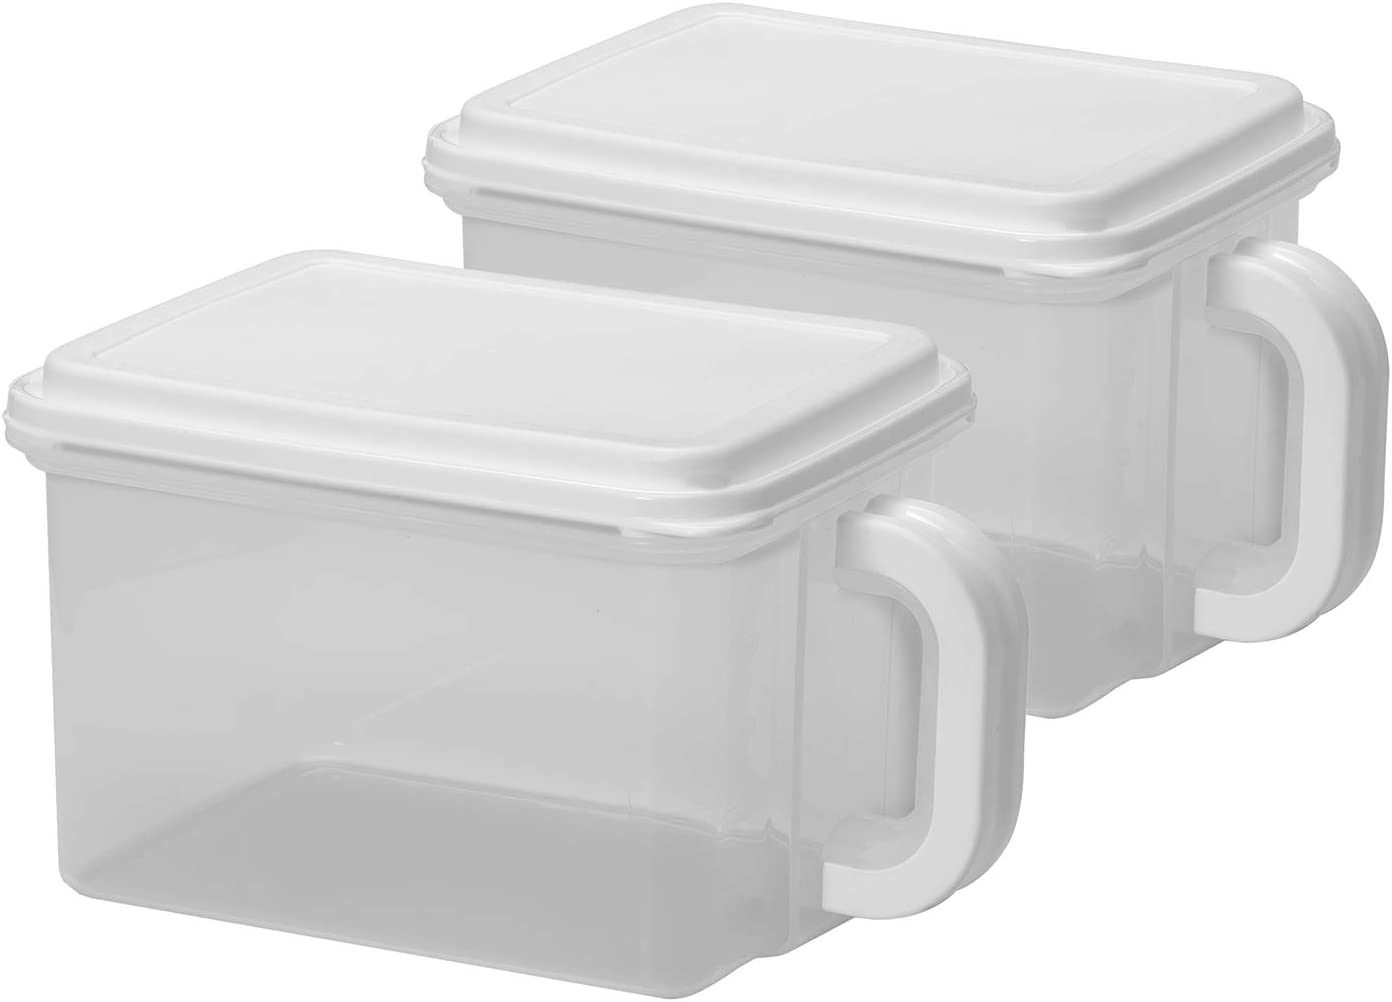 Buddeez 00251-2 2PK Store and Pour BPA Free, Plastic Food Storage Containers - 21 Cup, White